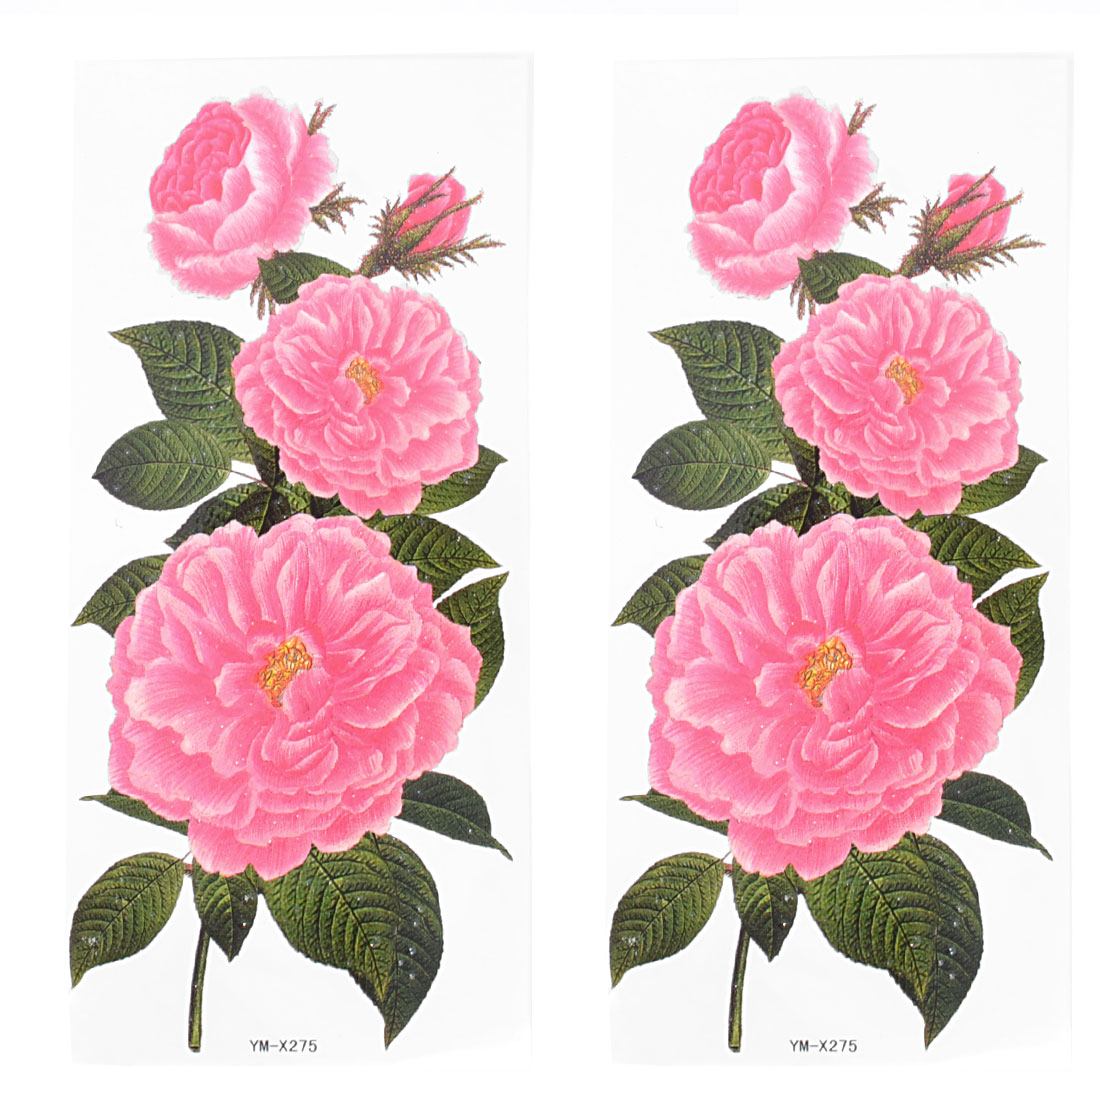 Skin Embellish Pink Peony Flower Pattern Temporary Tattoo Transfer Sticker 2 Pcs